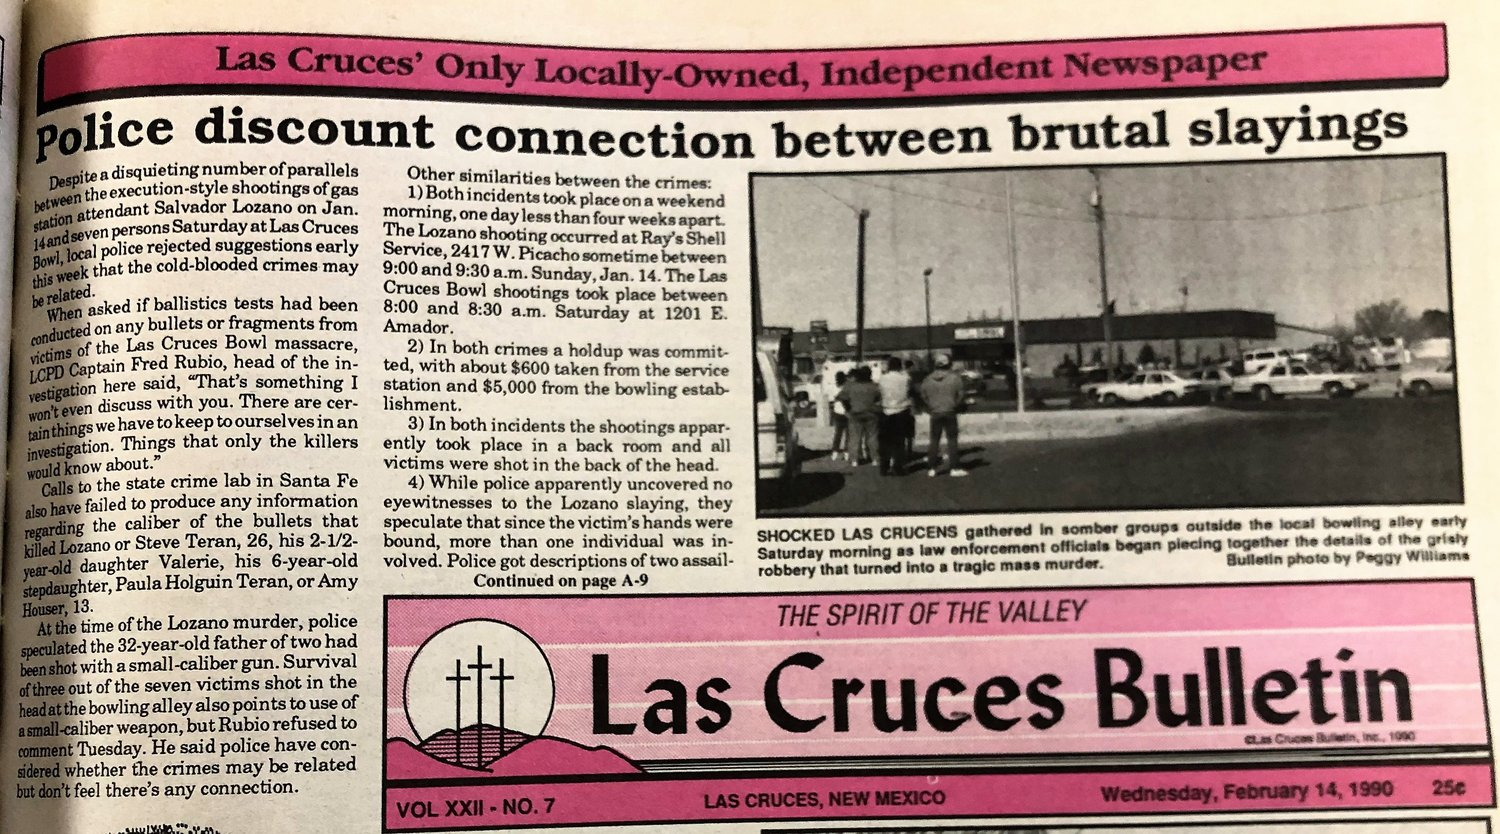 Some of the biggest headlines across Las Cruces continued through the year as investigators looked into the shootings of seven people at a local bowling alley.